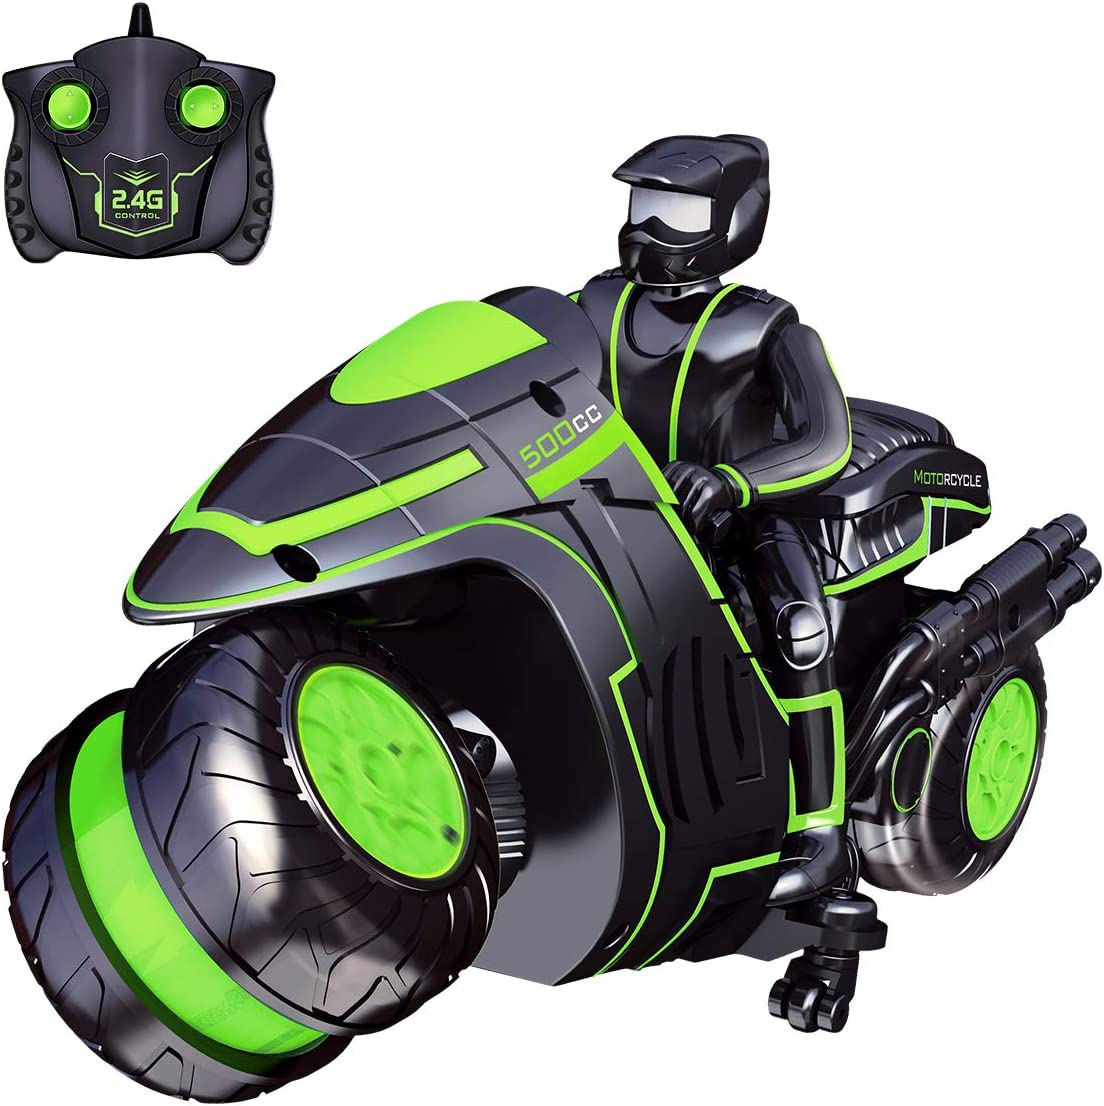 Selieve Remote Control Car for Kids, 2.4Ghz High Speed and 360° Spinning Remote Control Motorcycle with One Rechargeable Batteries, Best Gift/Toys for 6-12 Year Old Boys or Girls